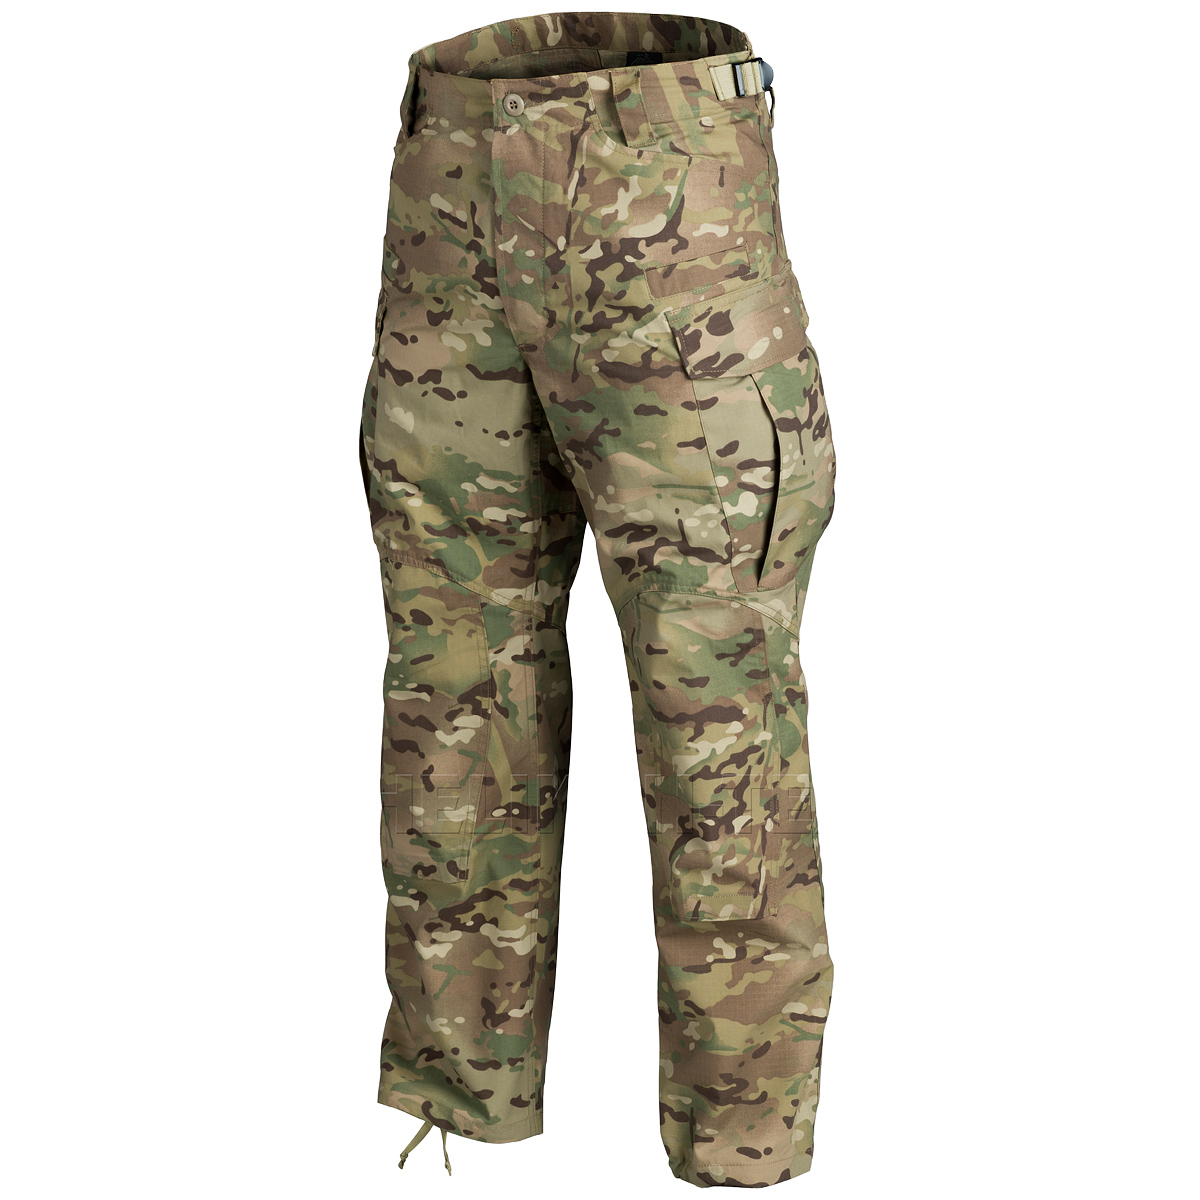 SFU COMBAT TROUSERS UNIFORM MENS PANTS AIRSOFT ARMY HELIKON NYCO MULTICAM XS-XXL